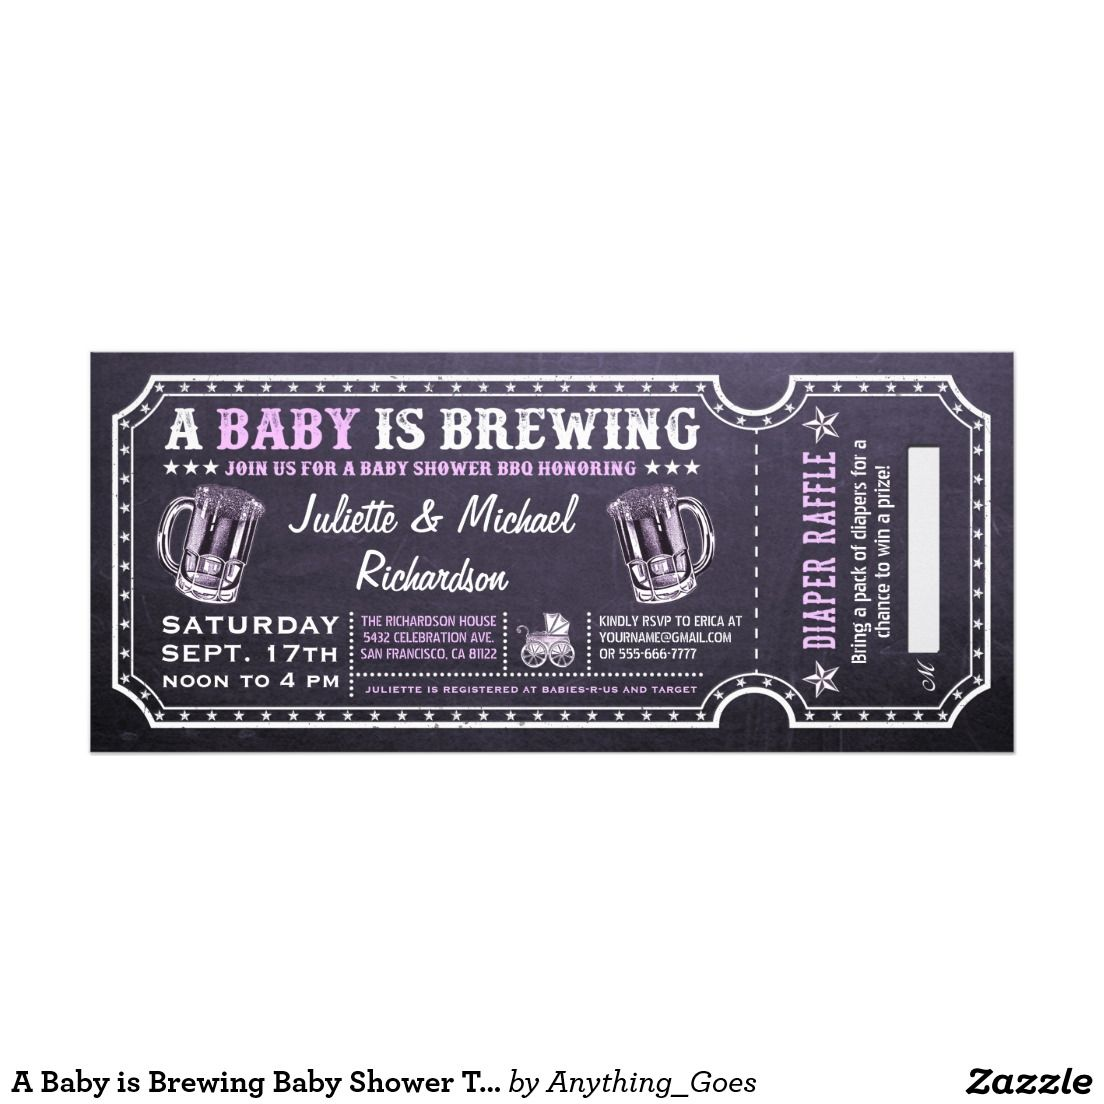 A Baby is Brewing Baby Shower Ticket Invitations | Invitations ...